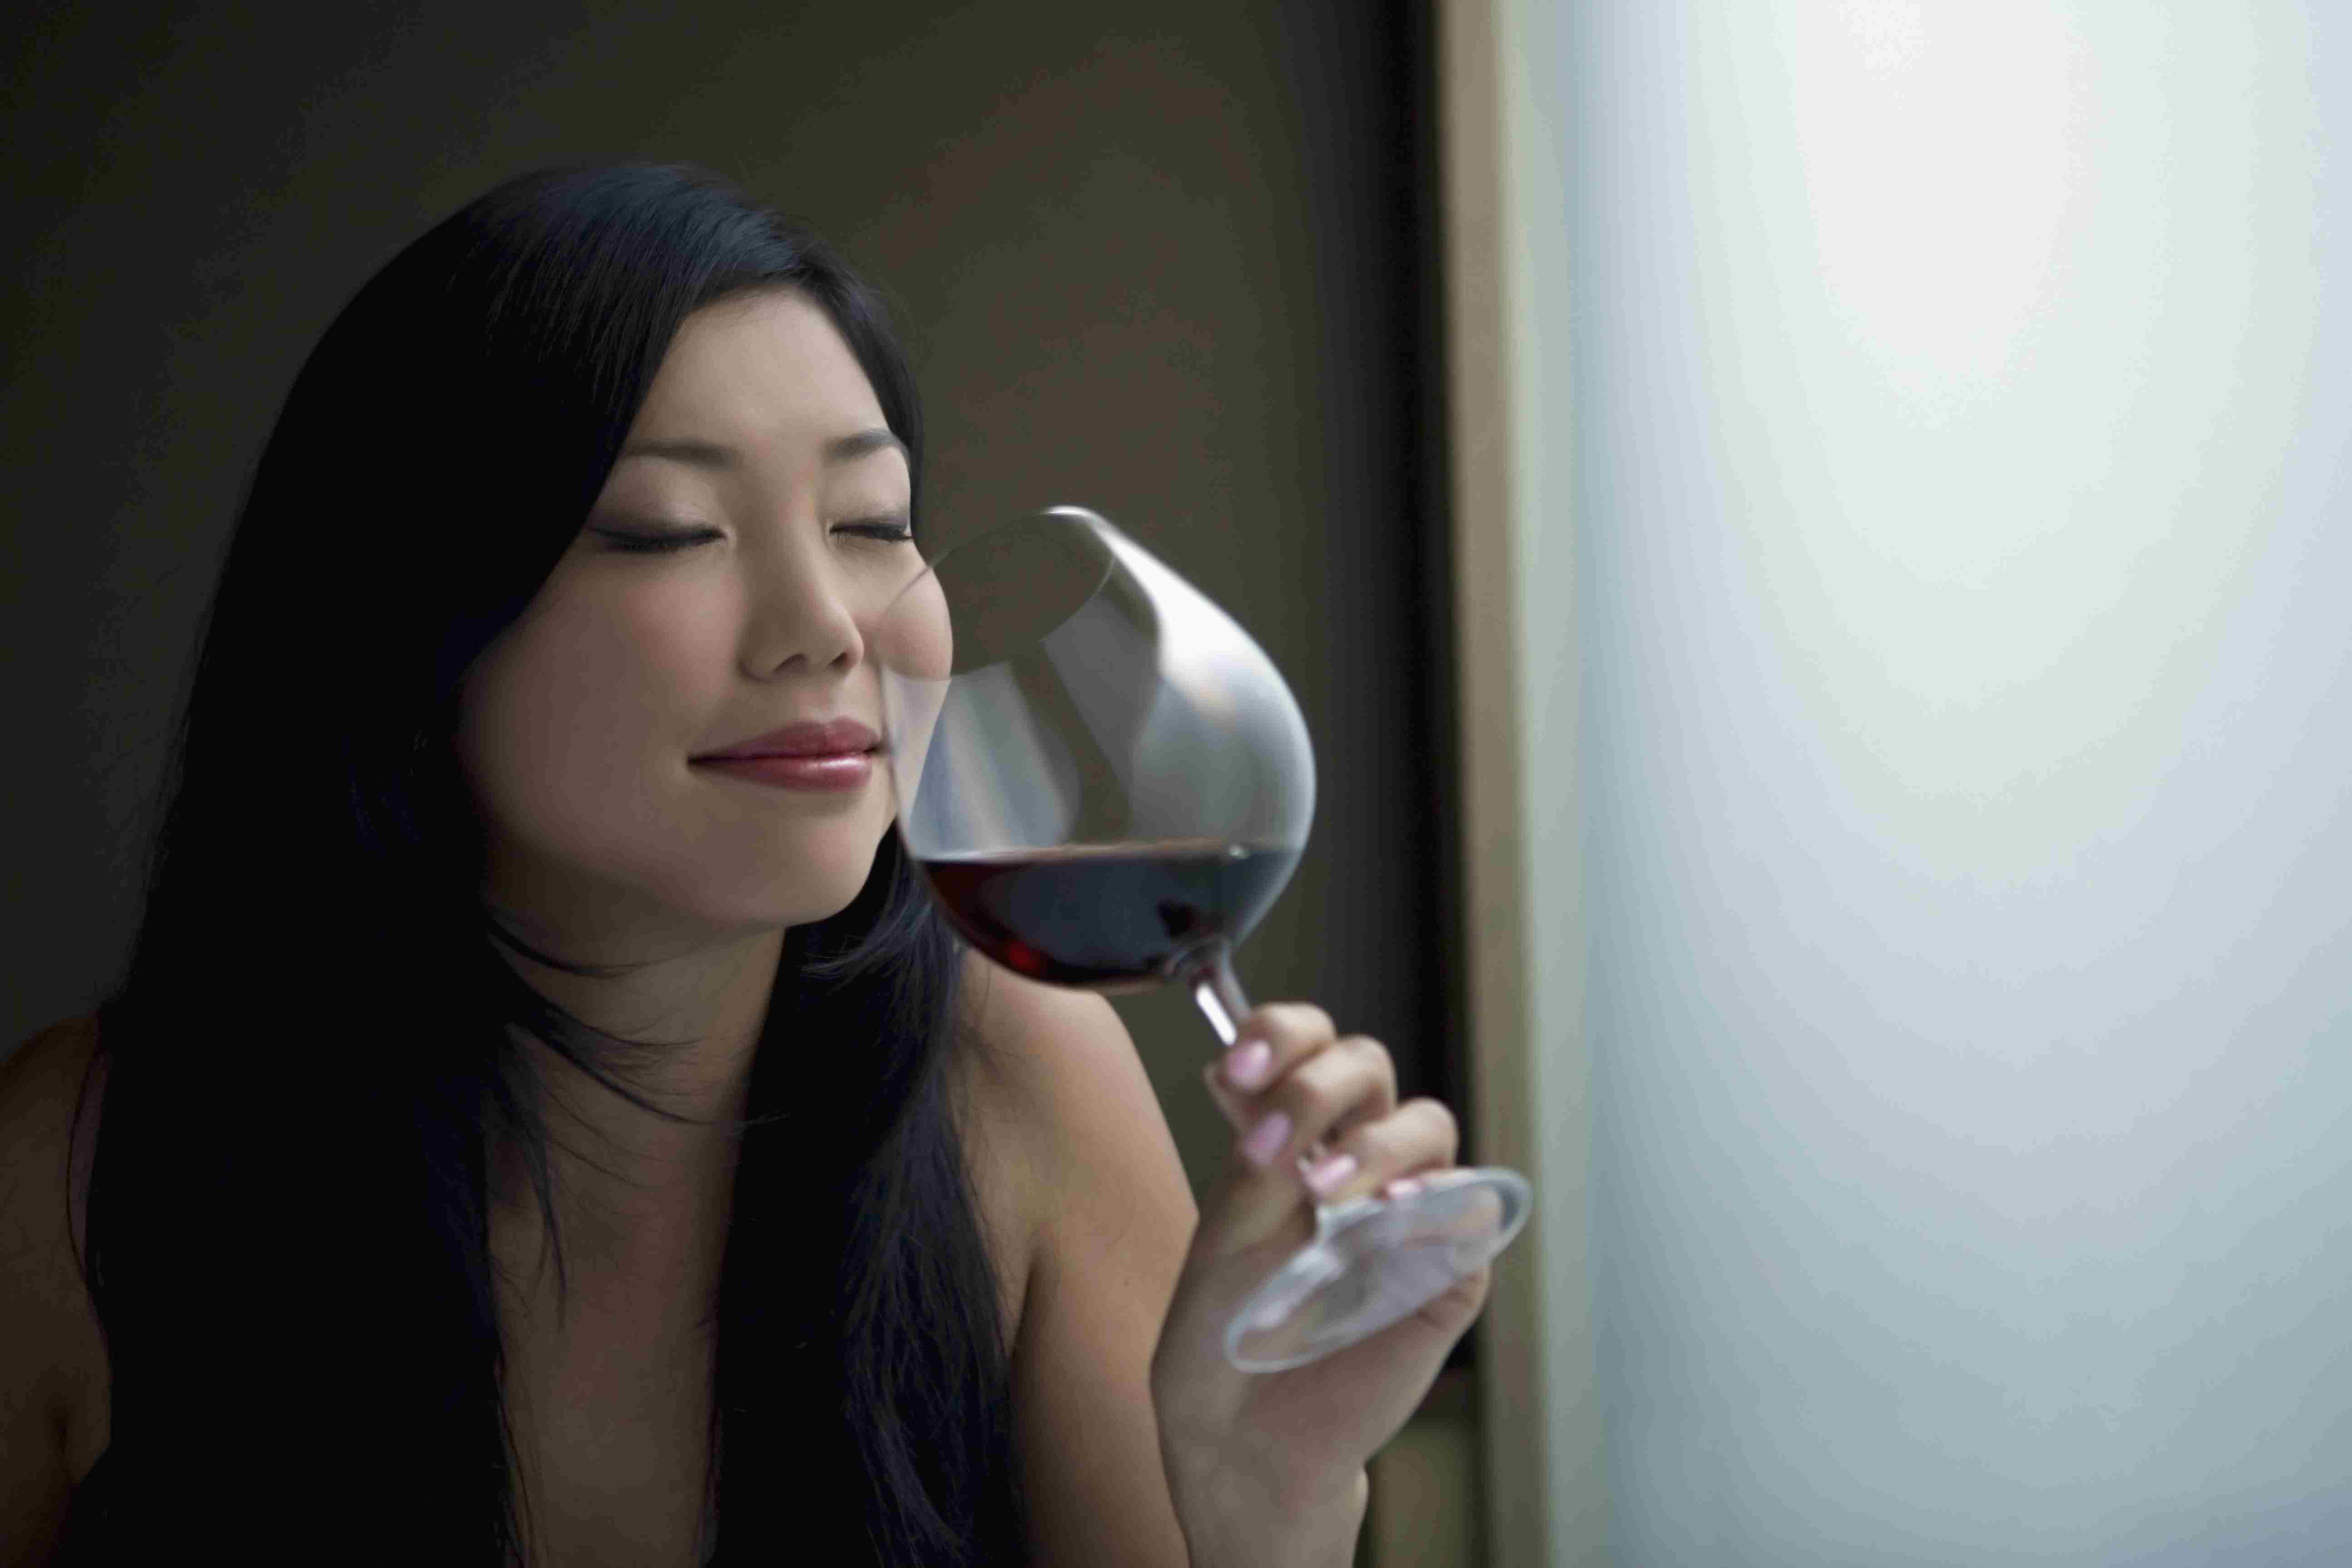 A woman smells red wine in a glass